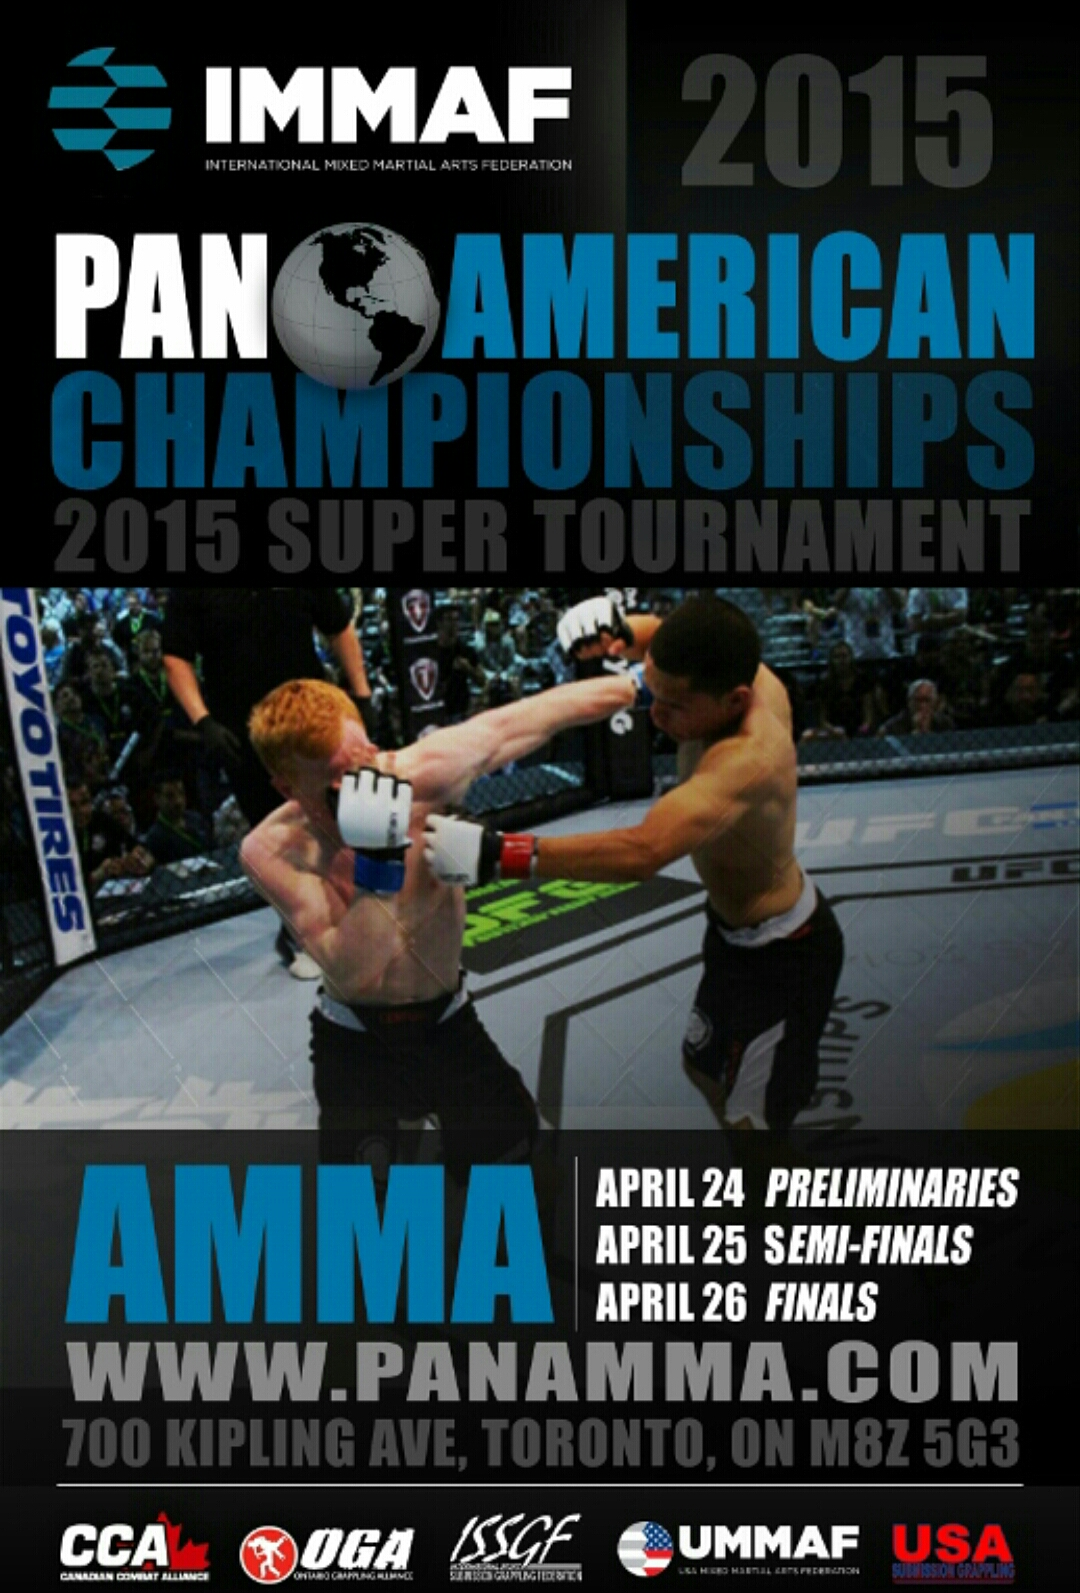 Last Chance to Apply for IMMAF Pan American Championships of AmateurMMA